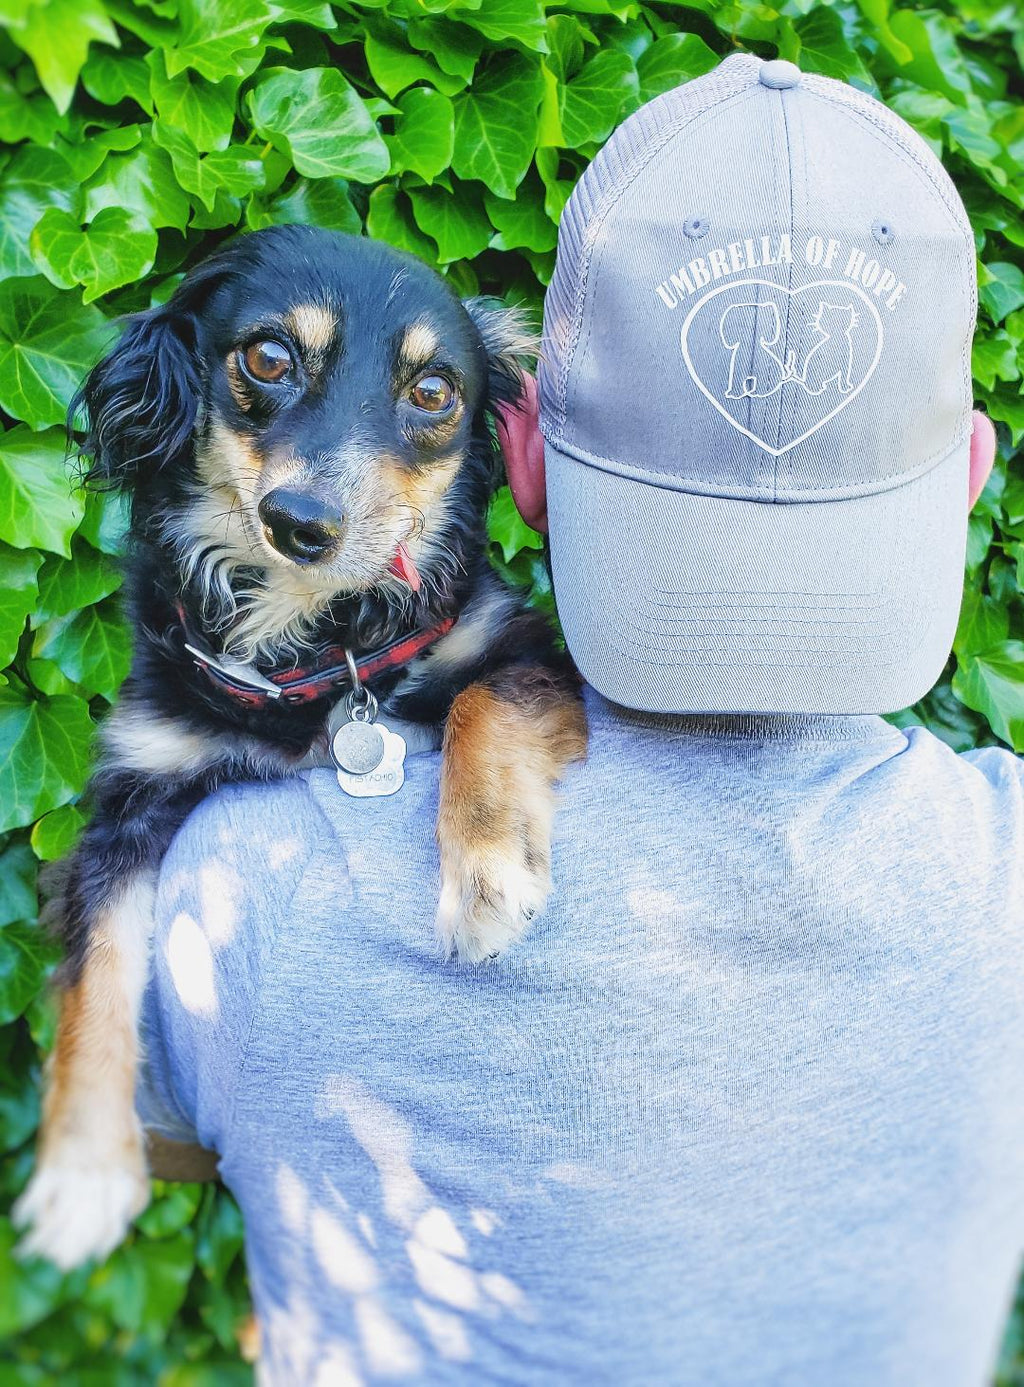 Umbrella of Hope Cap - Ruff Life Rescue Wear